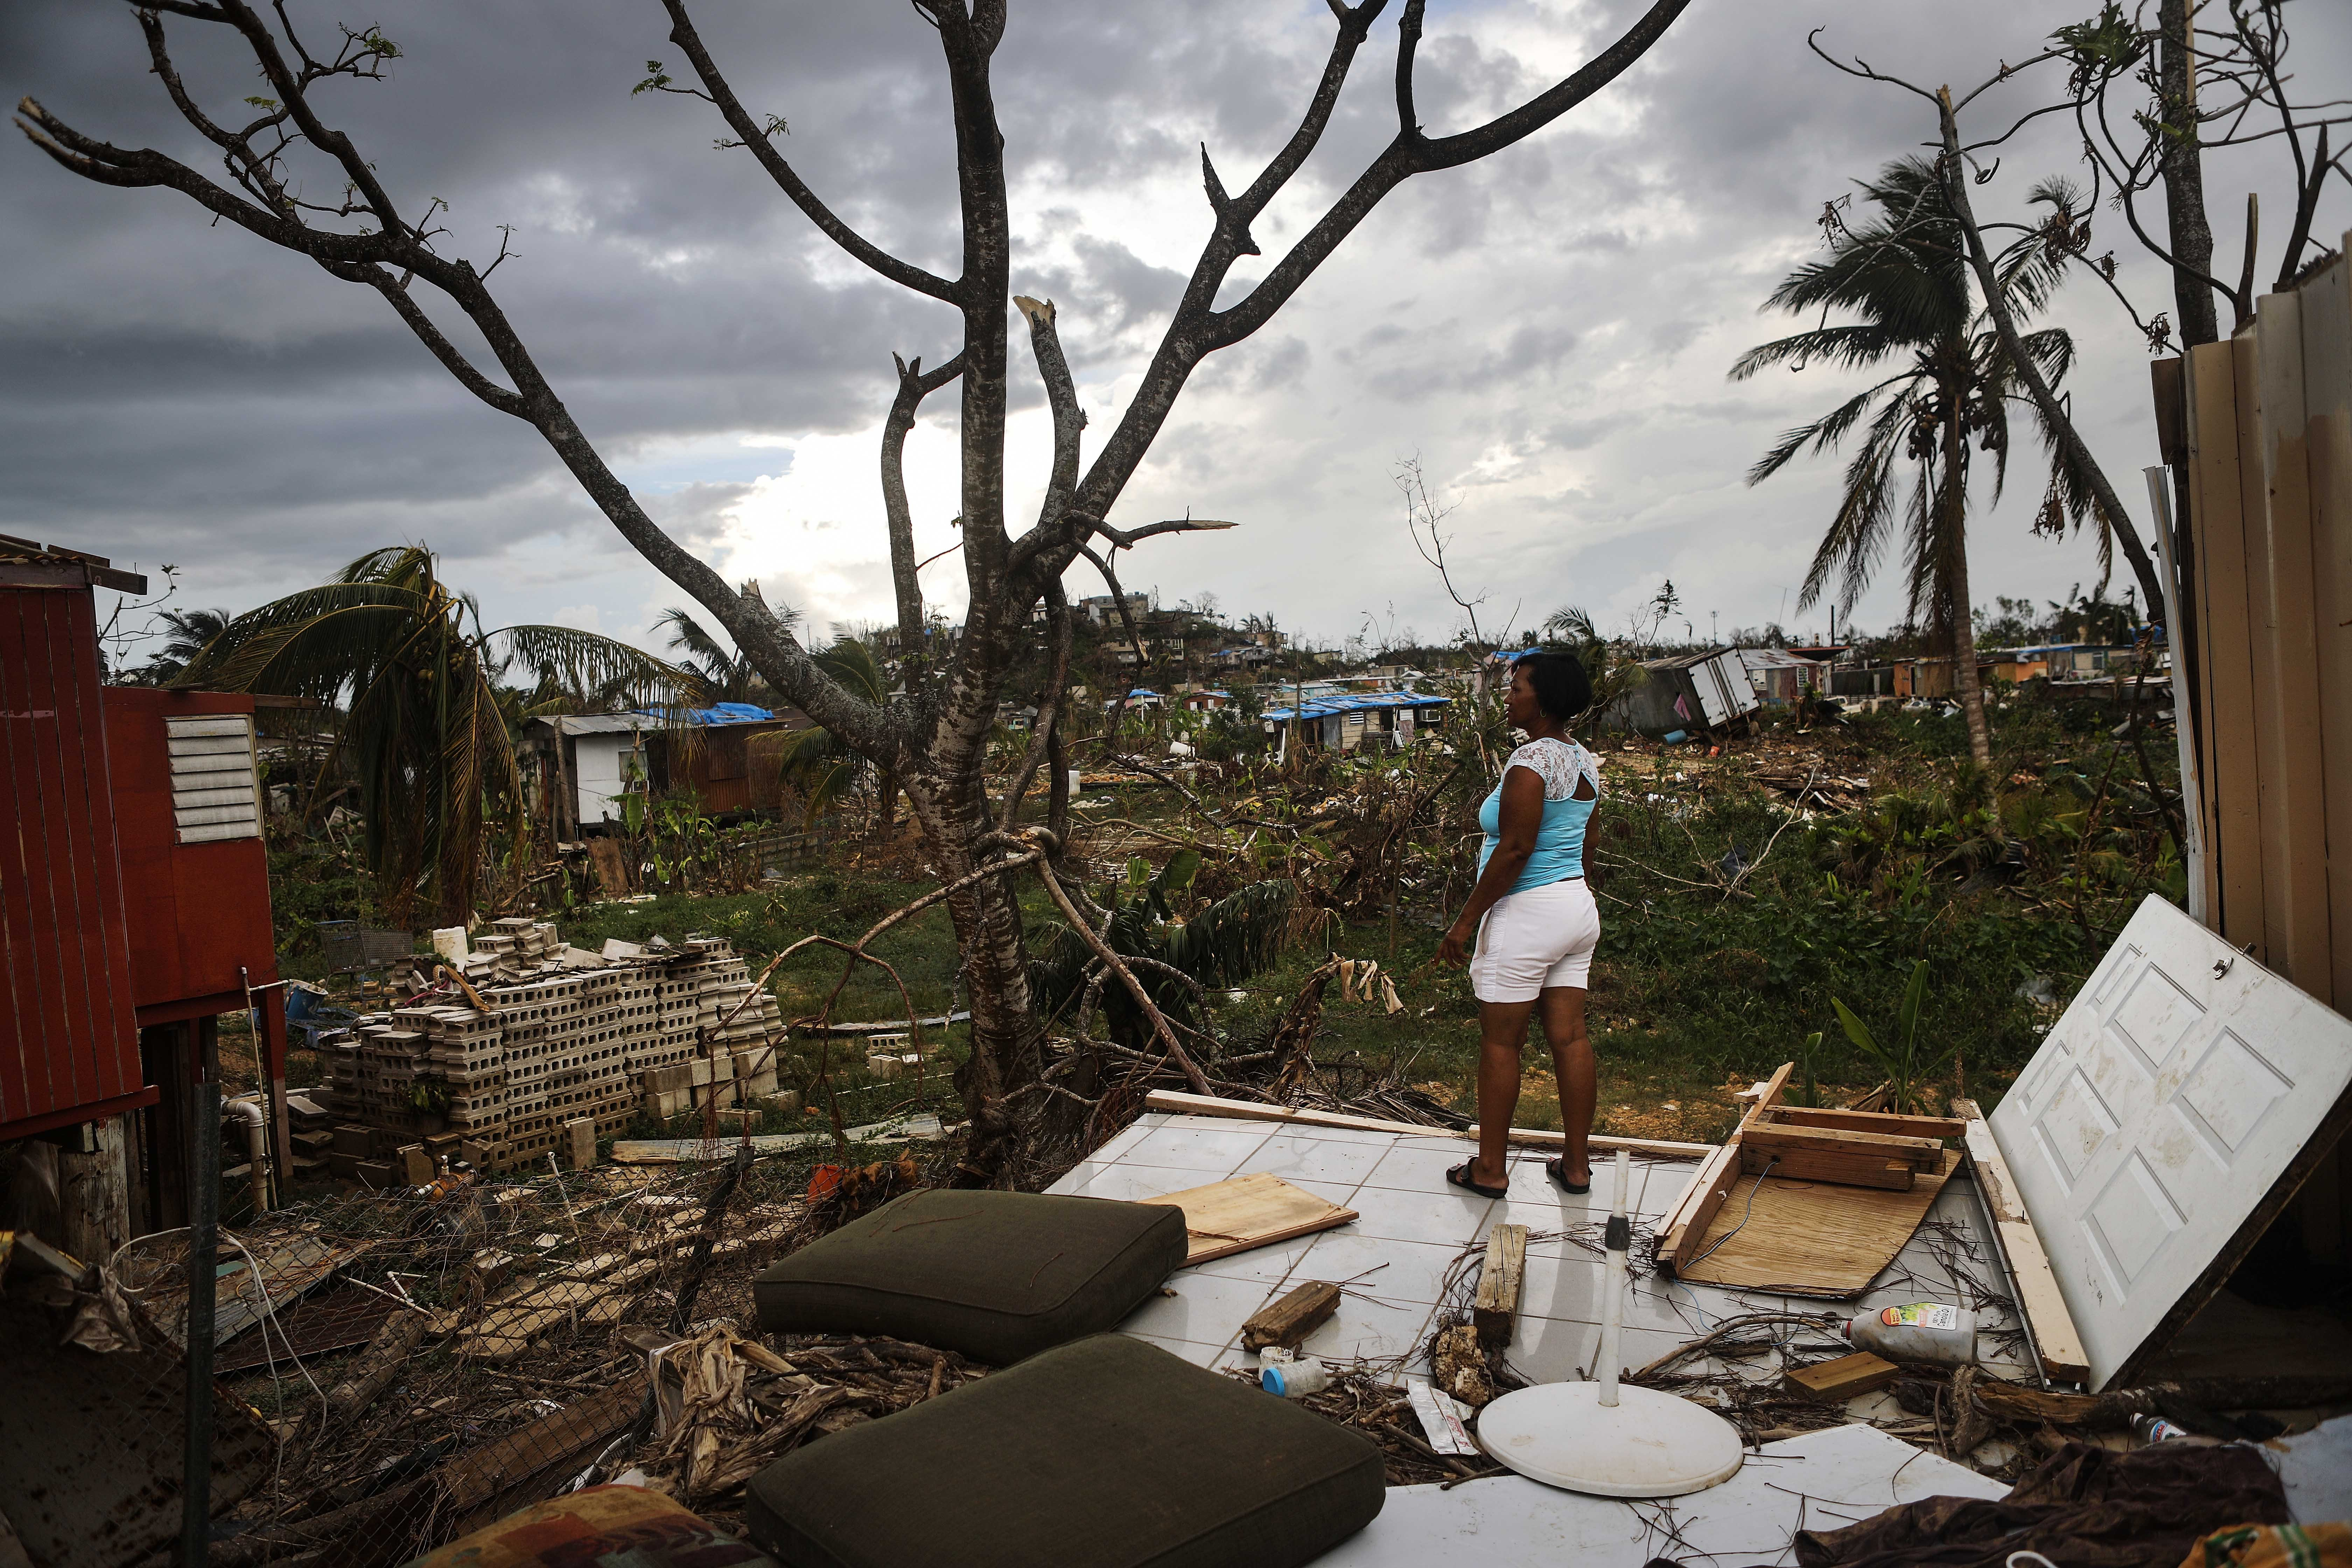 d1c0a0650c1 Why Is This Happening   Tracing the origins of the Puerto Rico disaster  with Naomi Klein  podcast   transcript